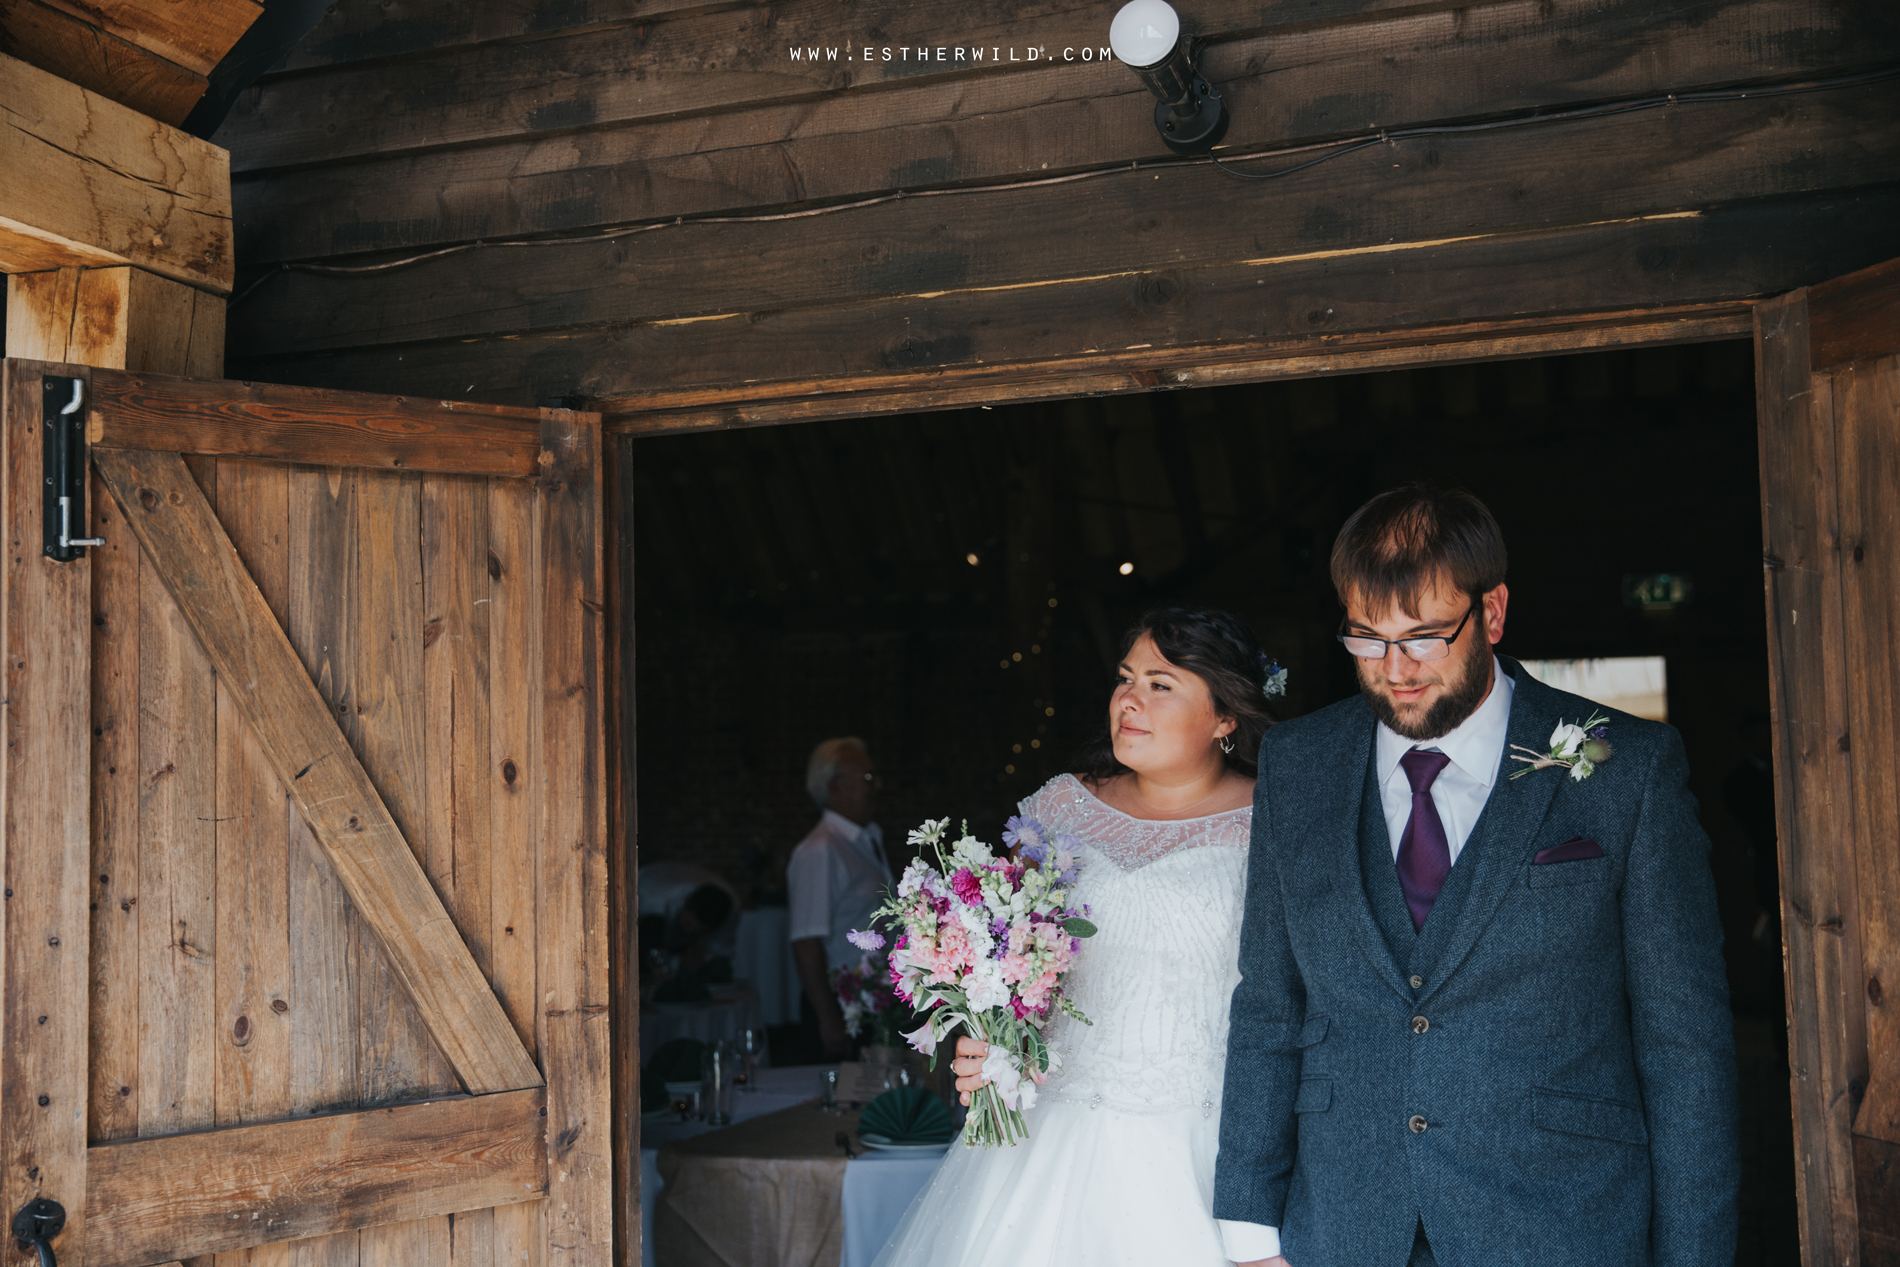 The_Red_Barn_Wedding_Kings_Lynn_Norfolk_IMG_1015.jpg